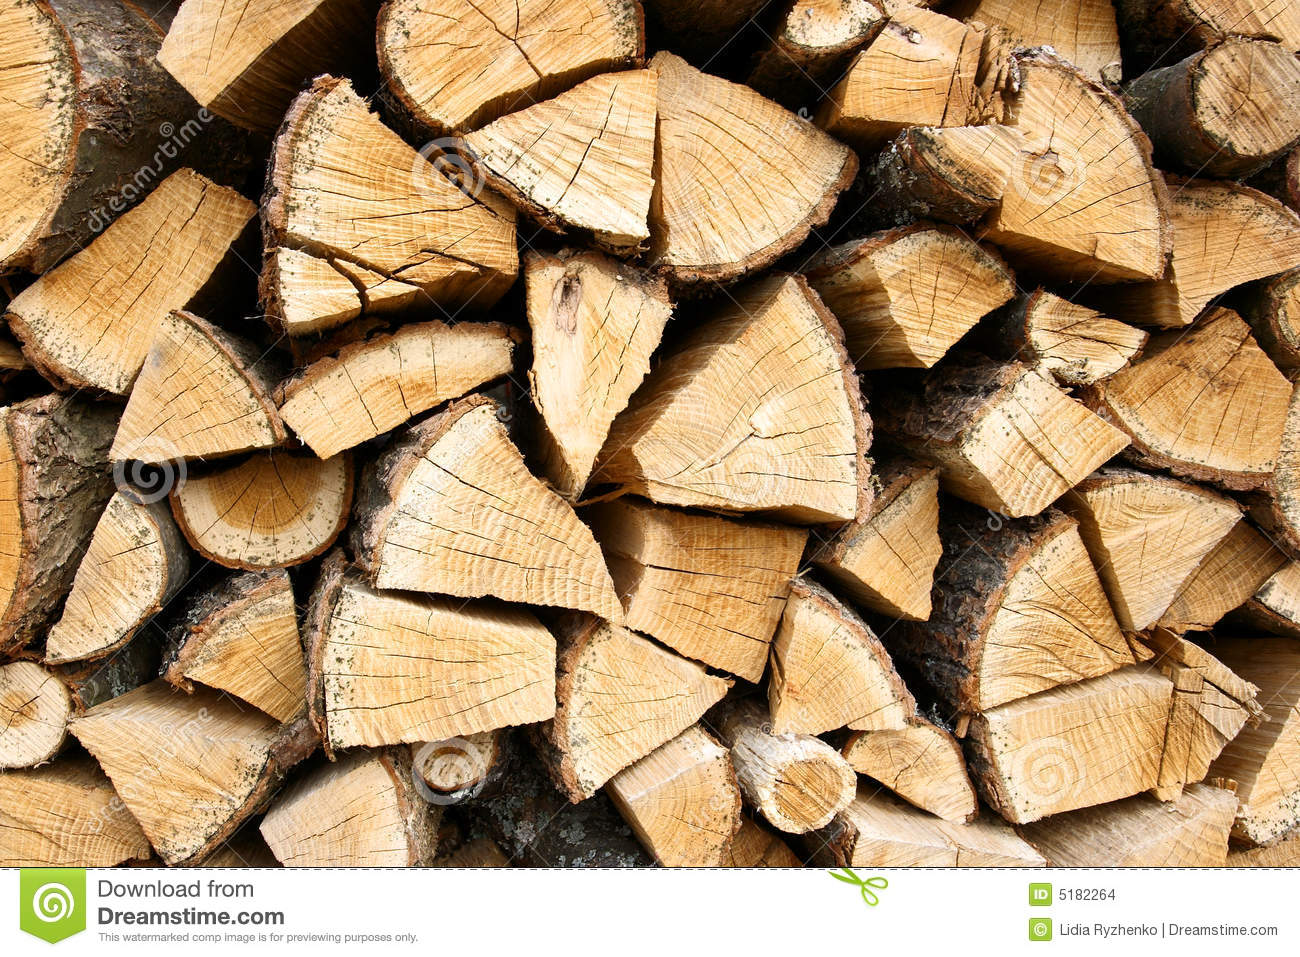 analysis wood pile 4 pier load rating and structural analysis 41 purpose of analysis  the results of the l-pile analysis are included in appendix e of this report.